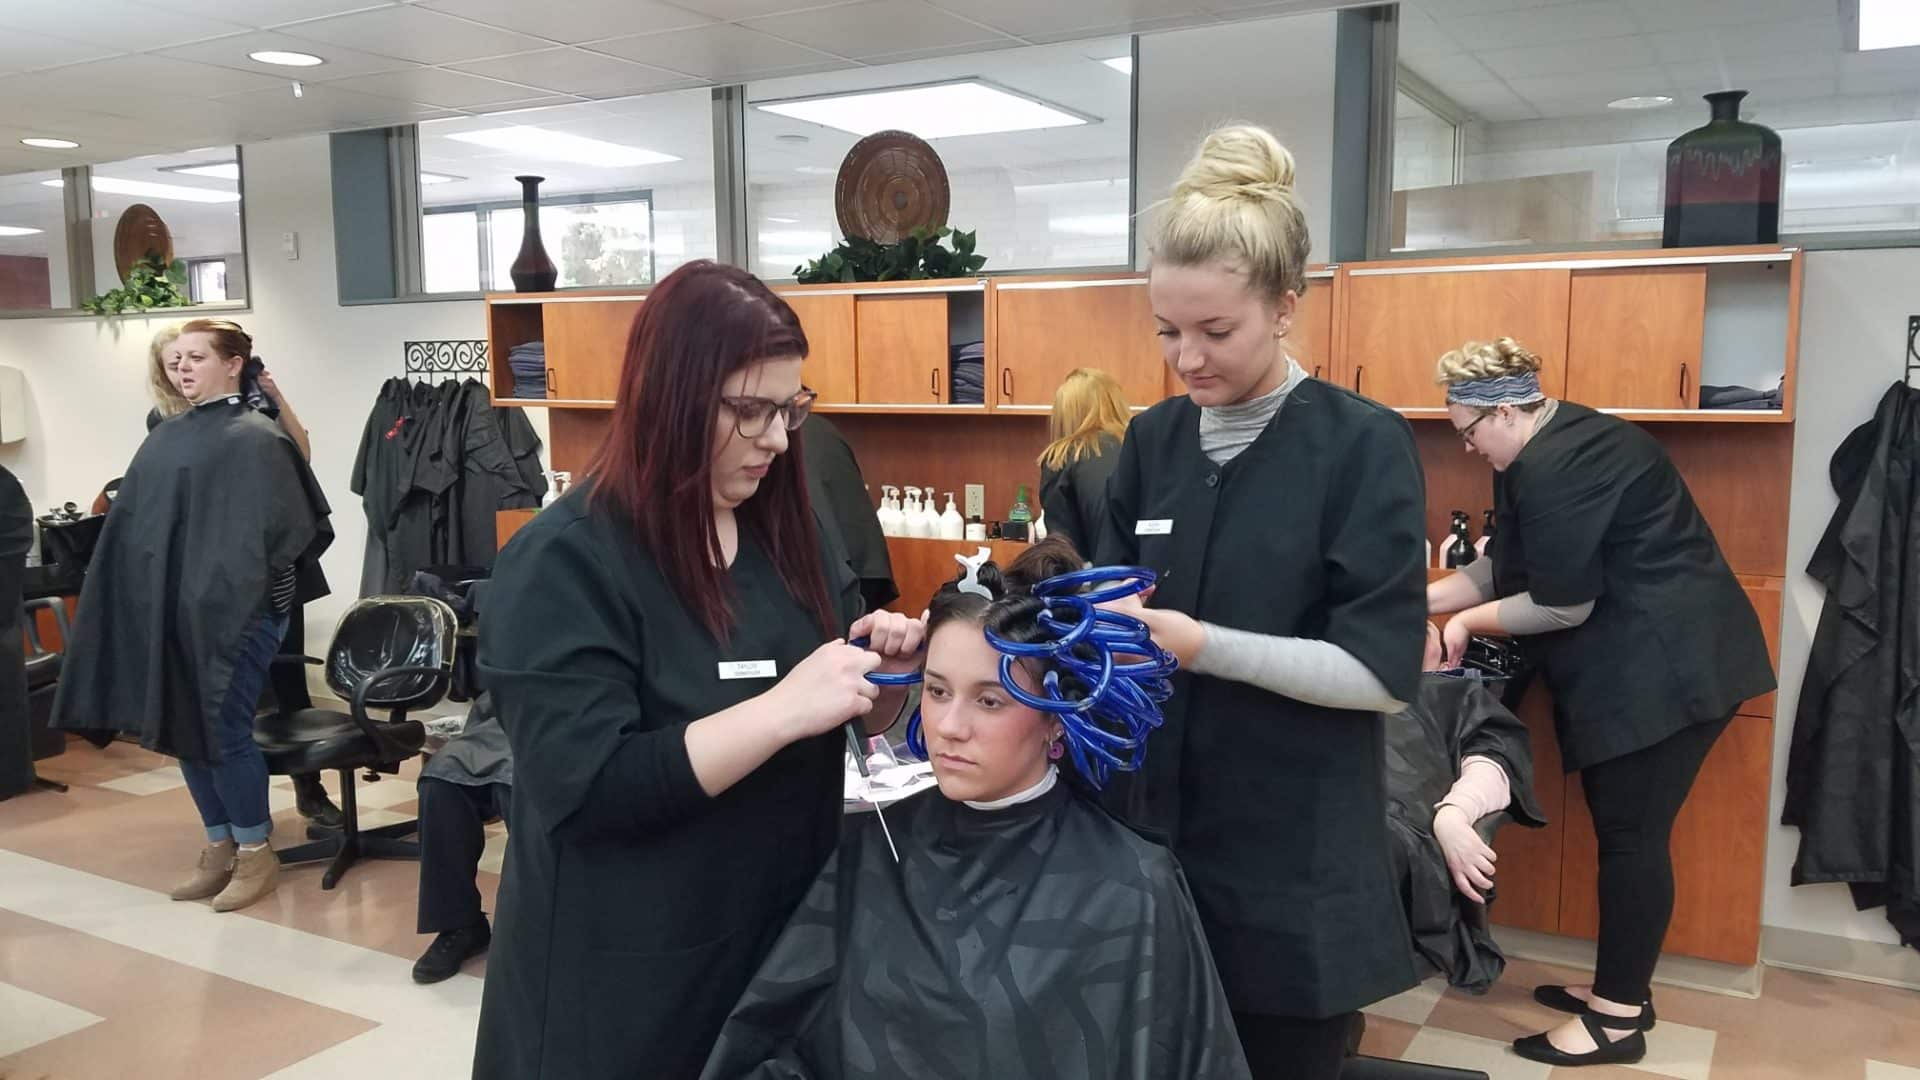 Cosmo students performing a perm